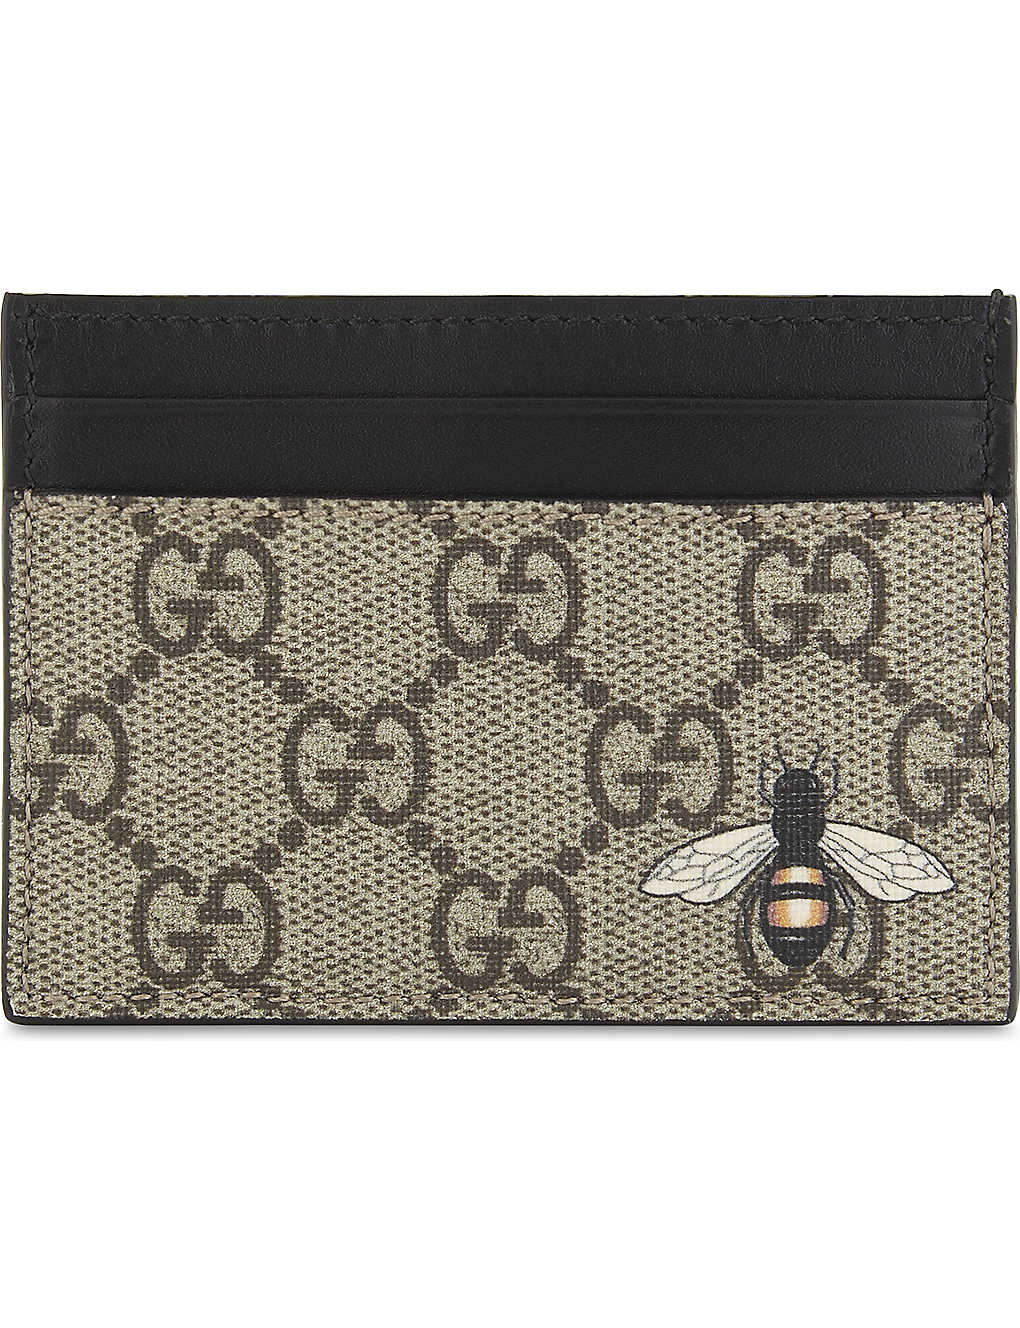 GUCCI - Bestiary GG Supreme card holder | Selfridges.com